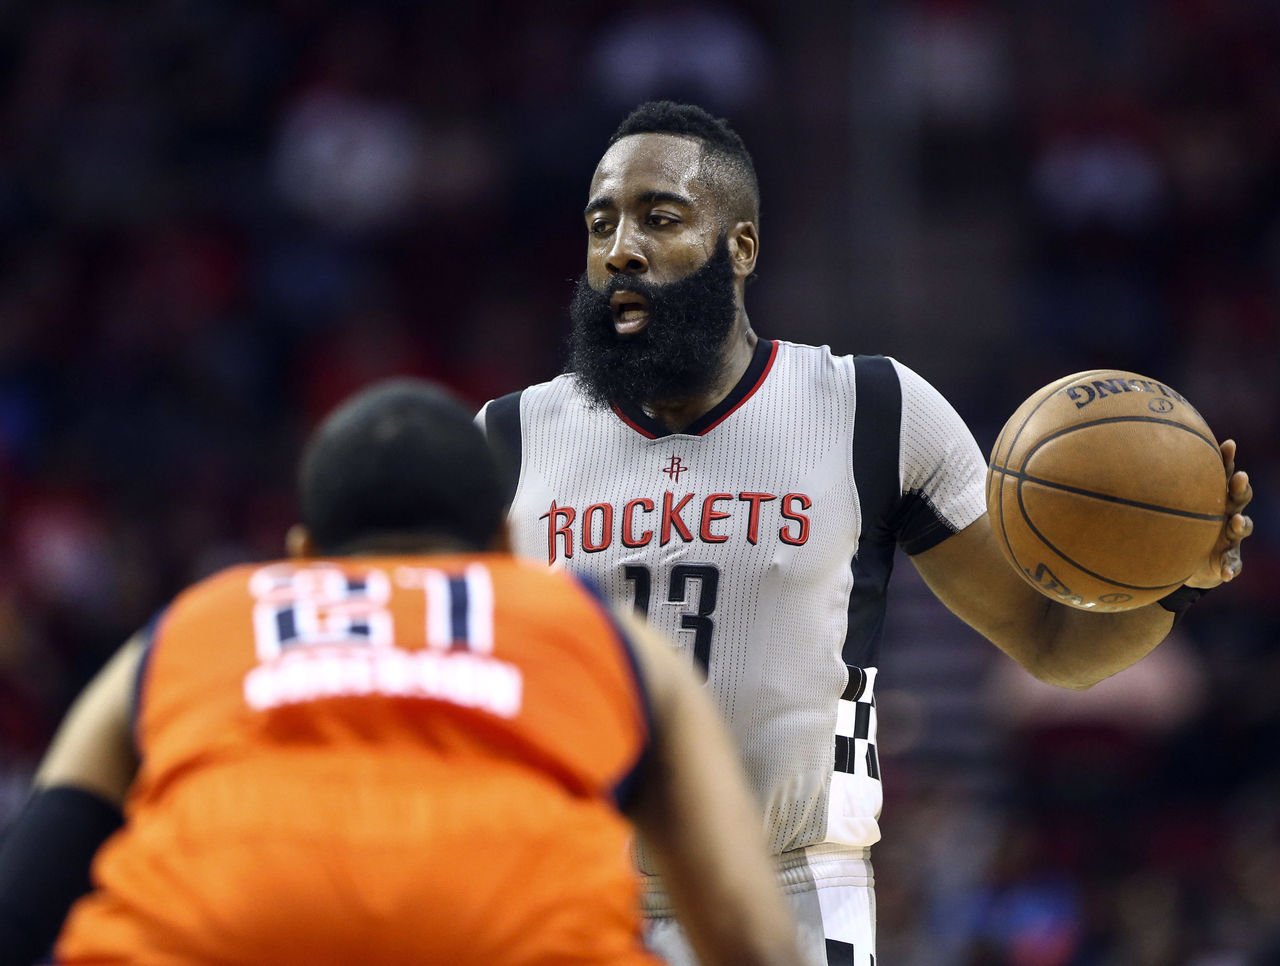 Cropped 2017 03 26t194545z 1518465589 nocid rtrmadp 3 nba oklahoma city thunder at houston rockets